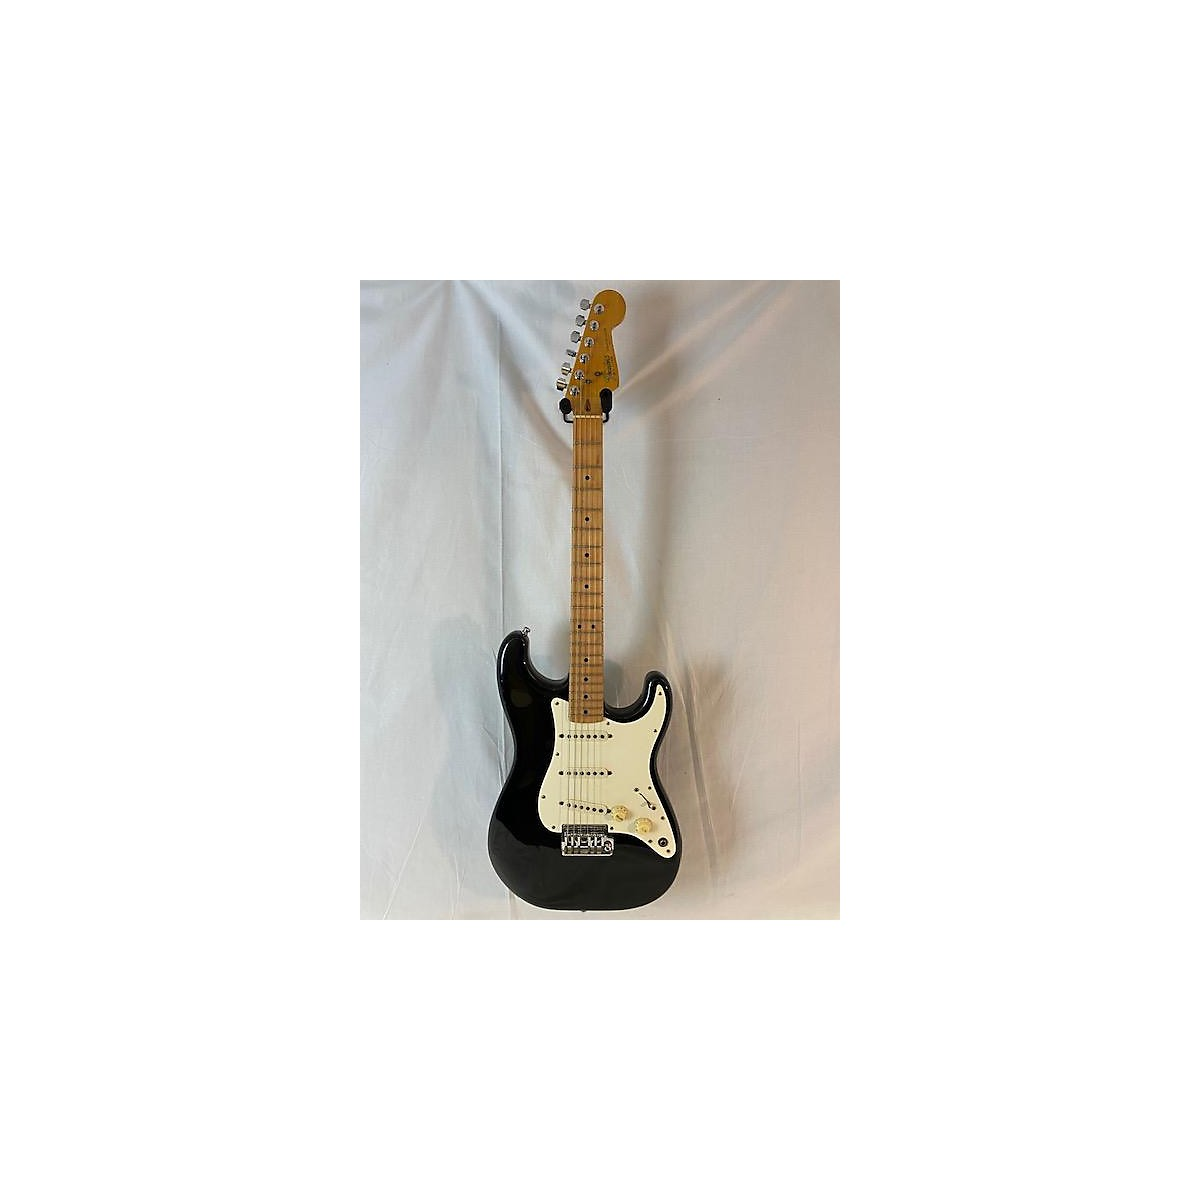 Fender 1982 DAN SMITH STRATOCASTER Solid Body Electric Guitar